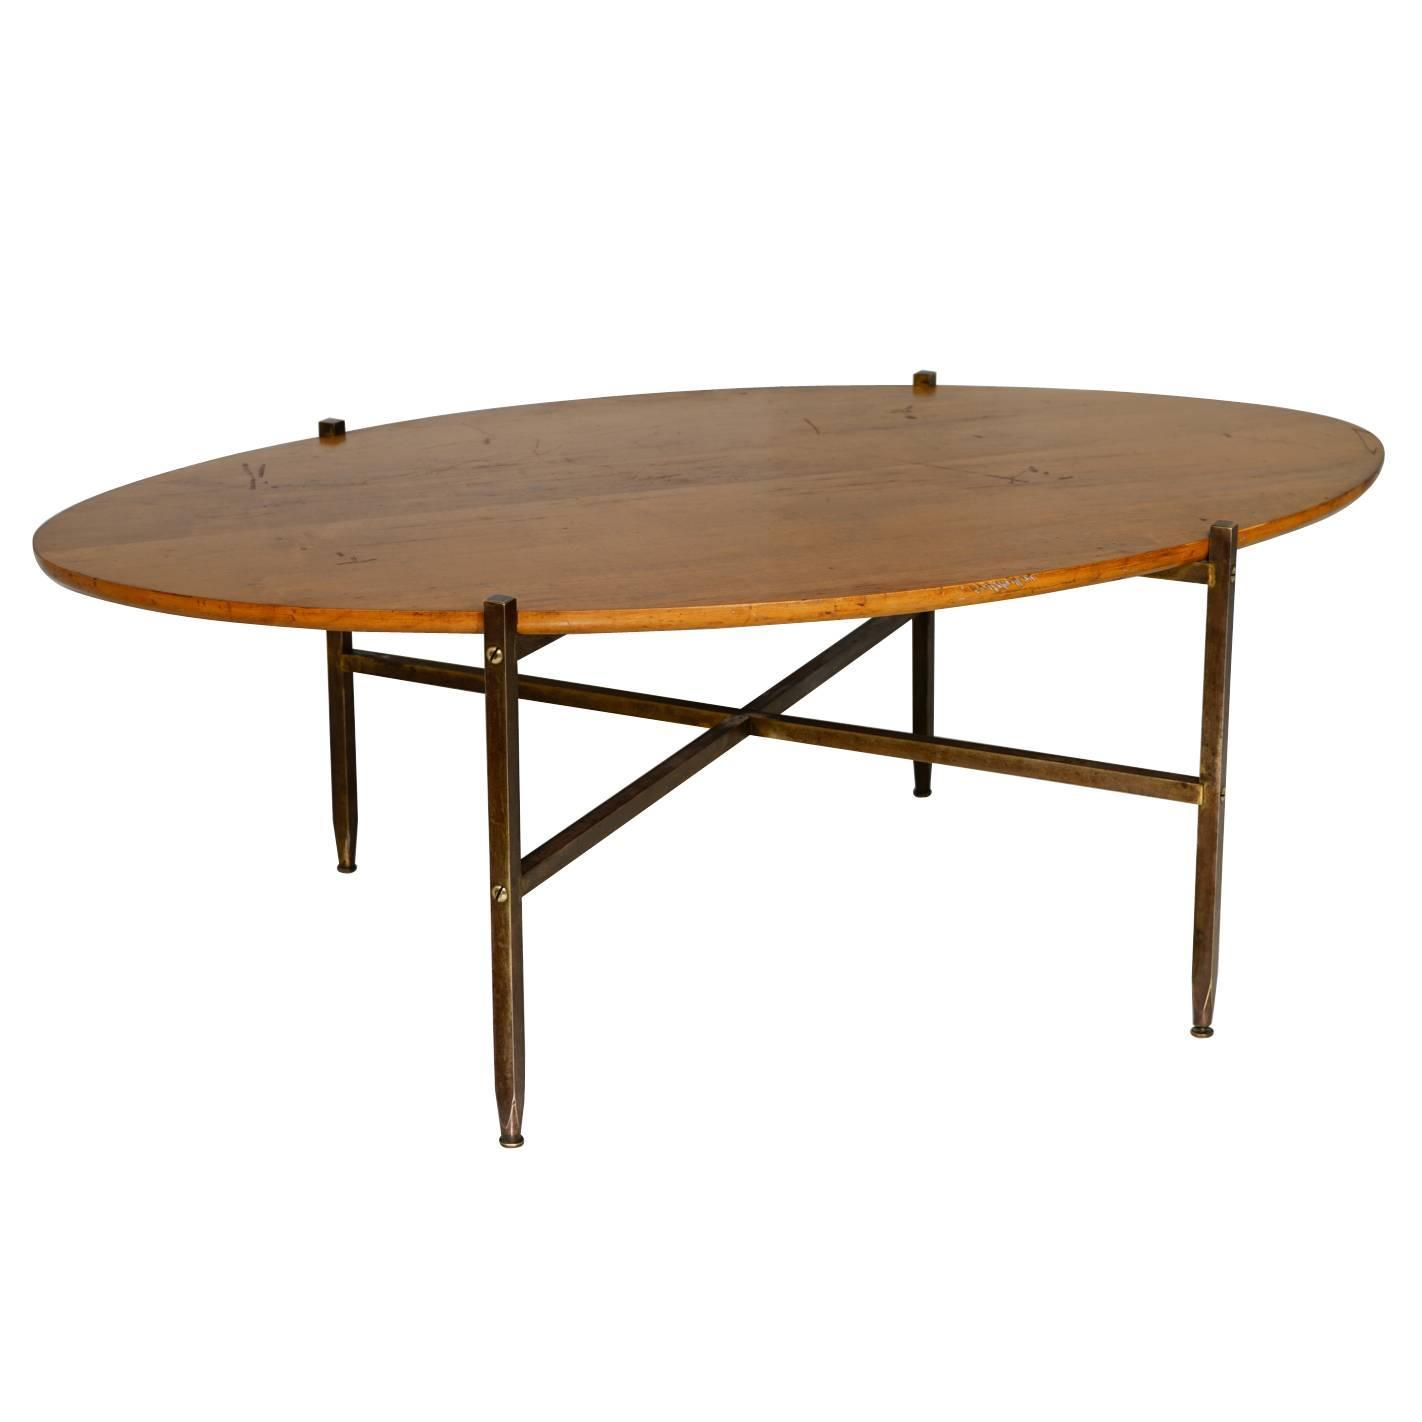 Extremely Rare Milo Baughman Brass And Mable Coffee Table At 1stdibs